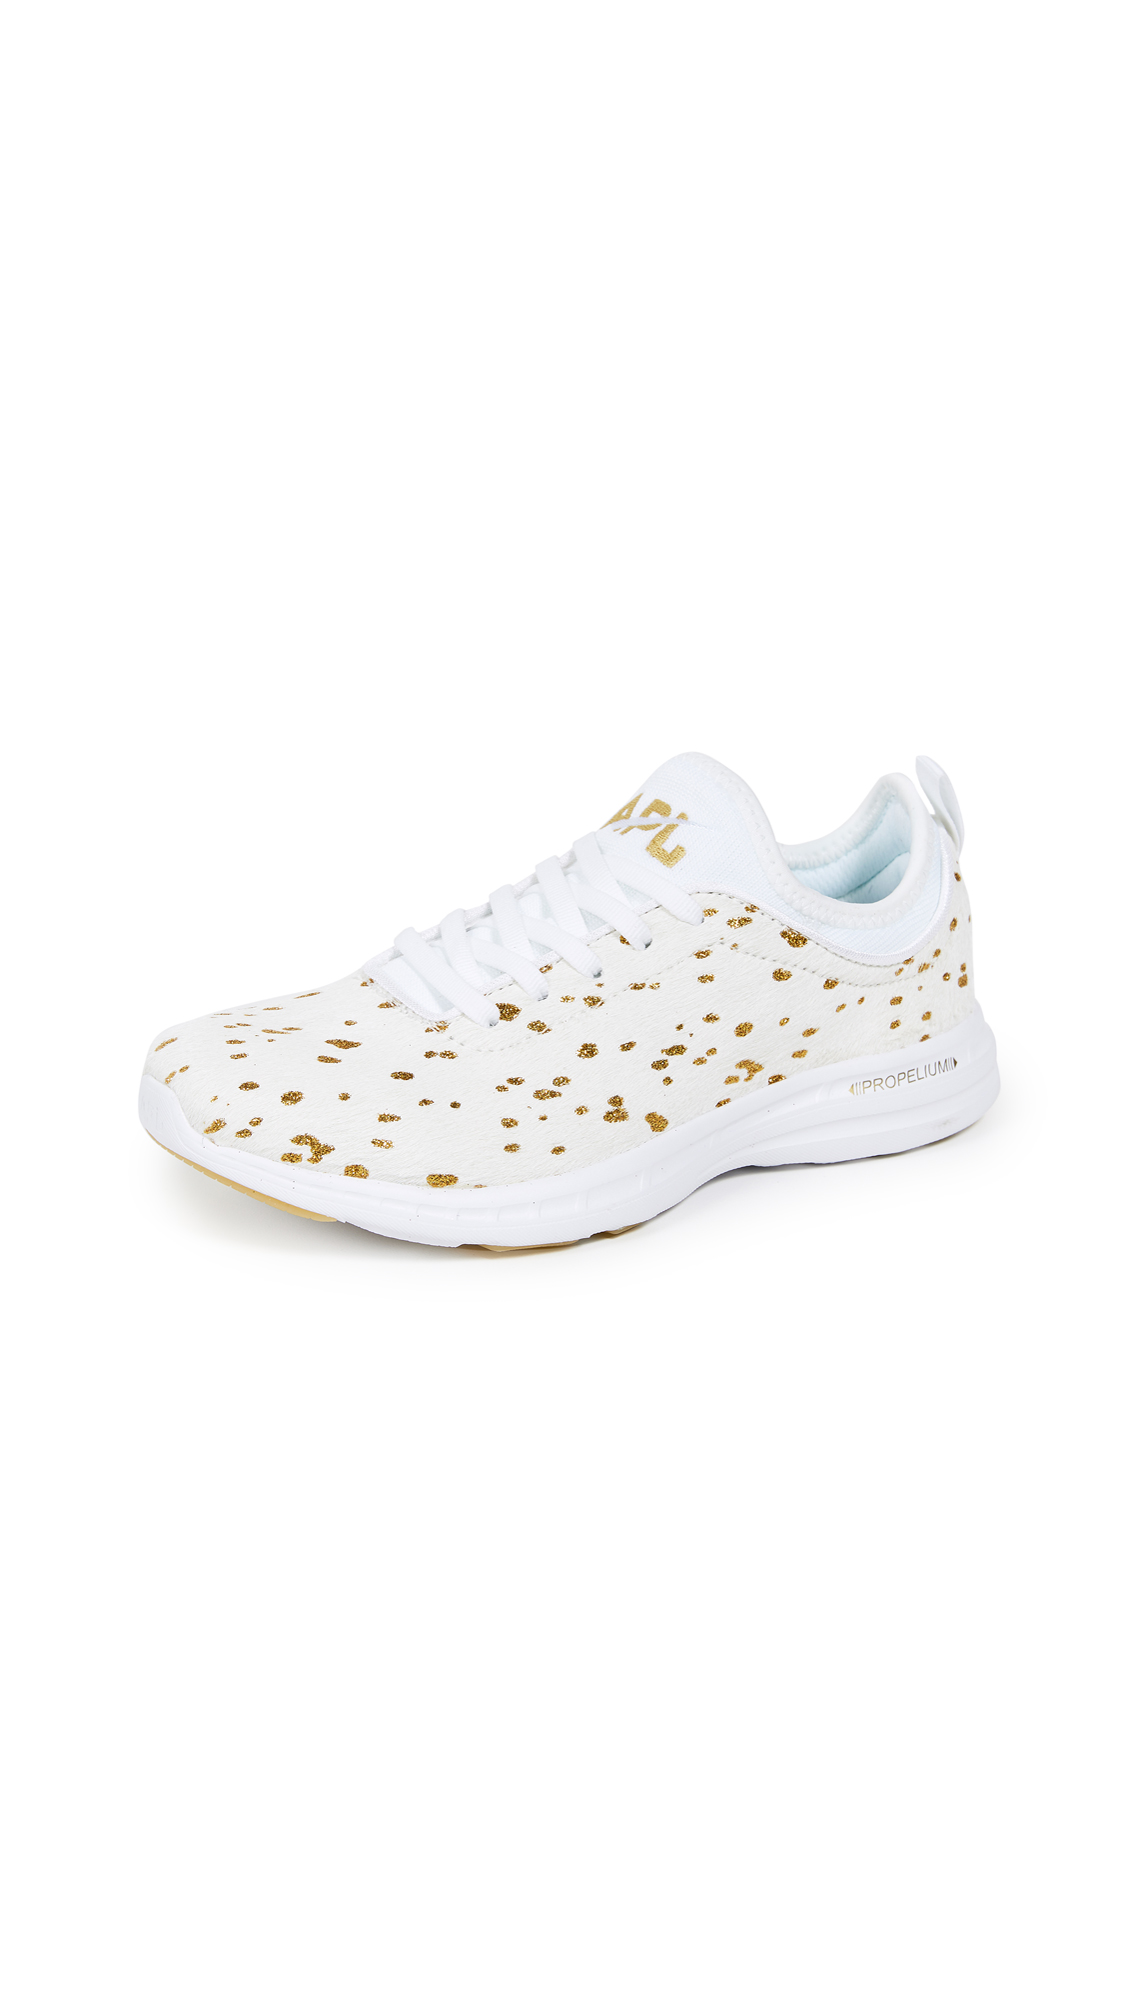 APL: Athletic Propulsion Labs TechLoom Phantom Sneakers - Cream/Gold